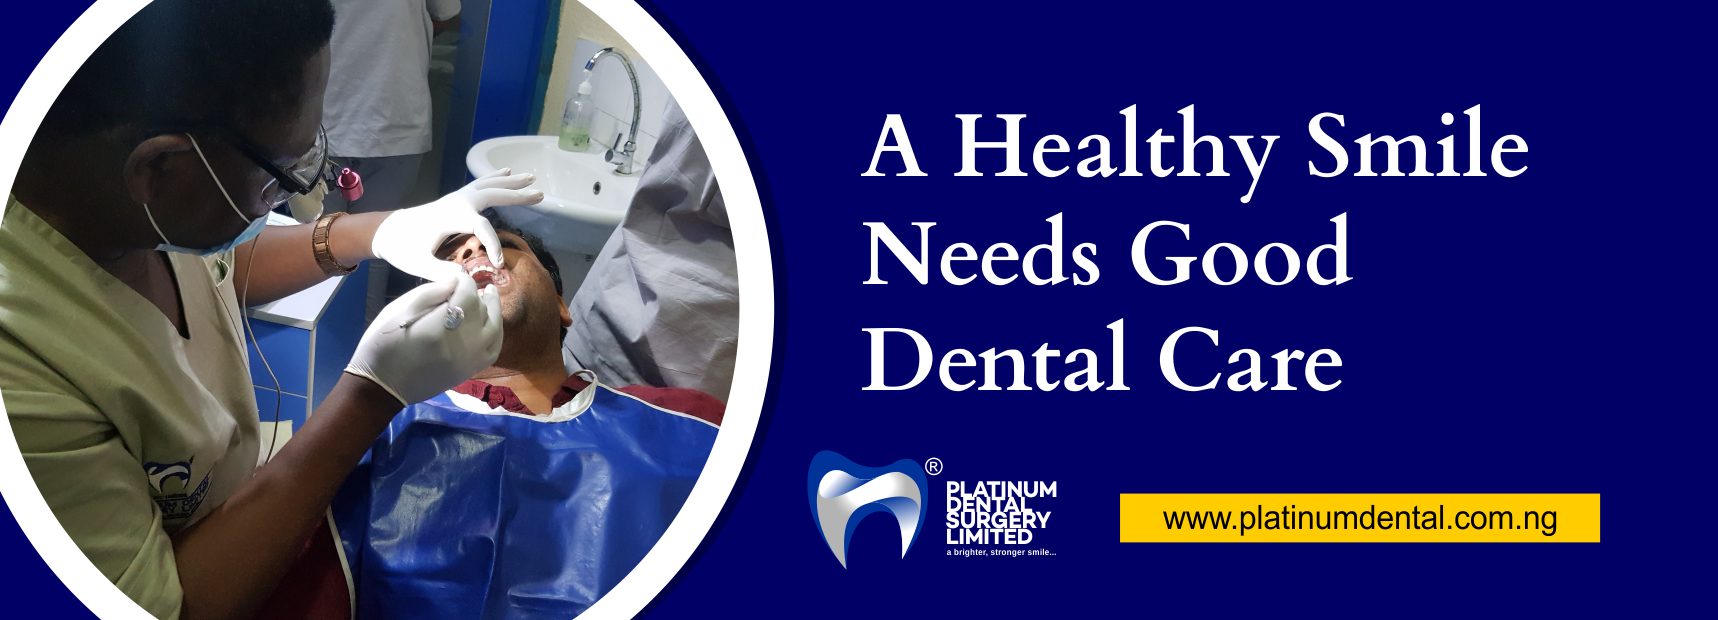 All Healthy Smile needs Good Dental Care